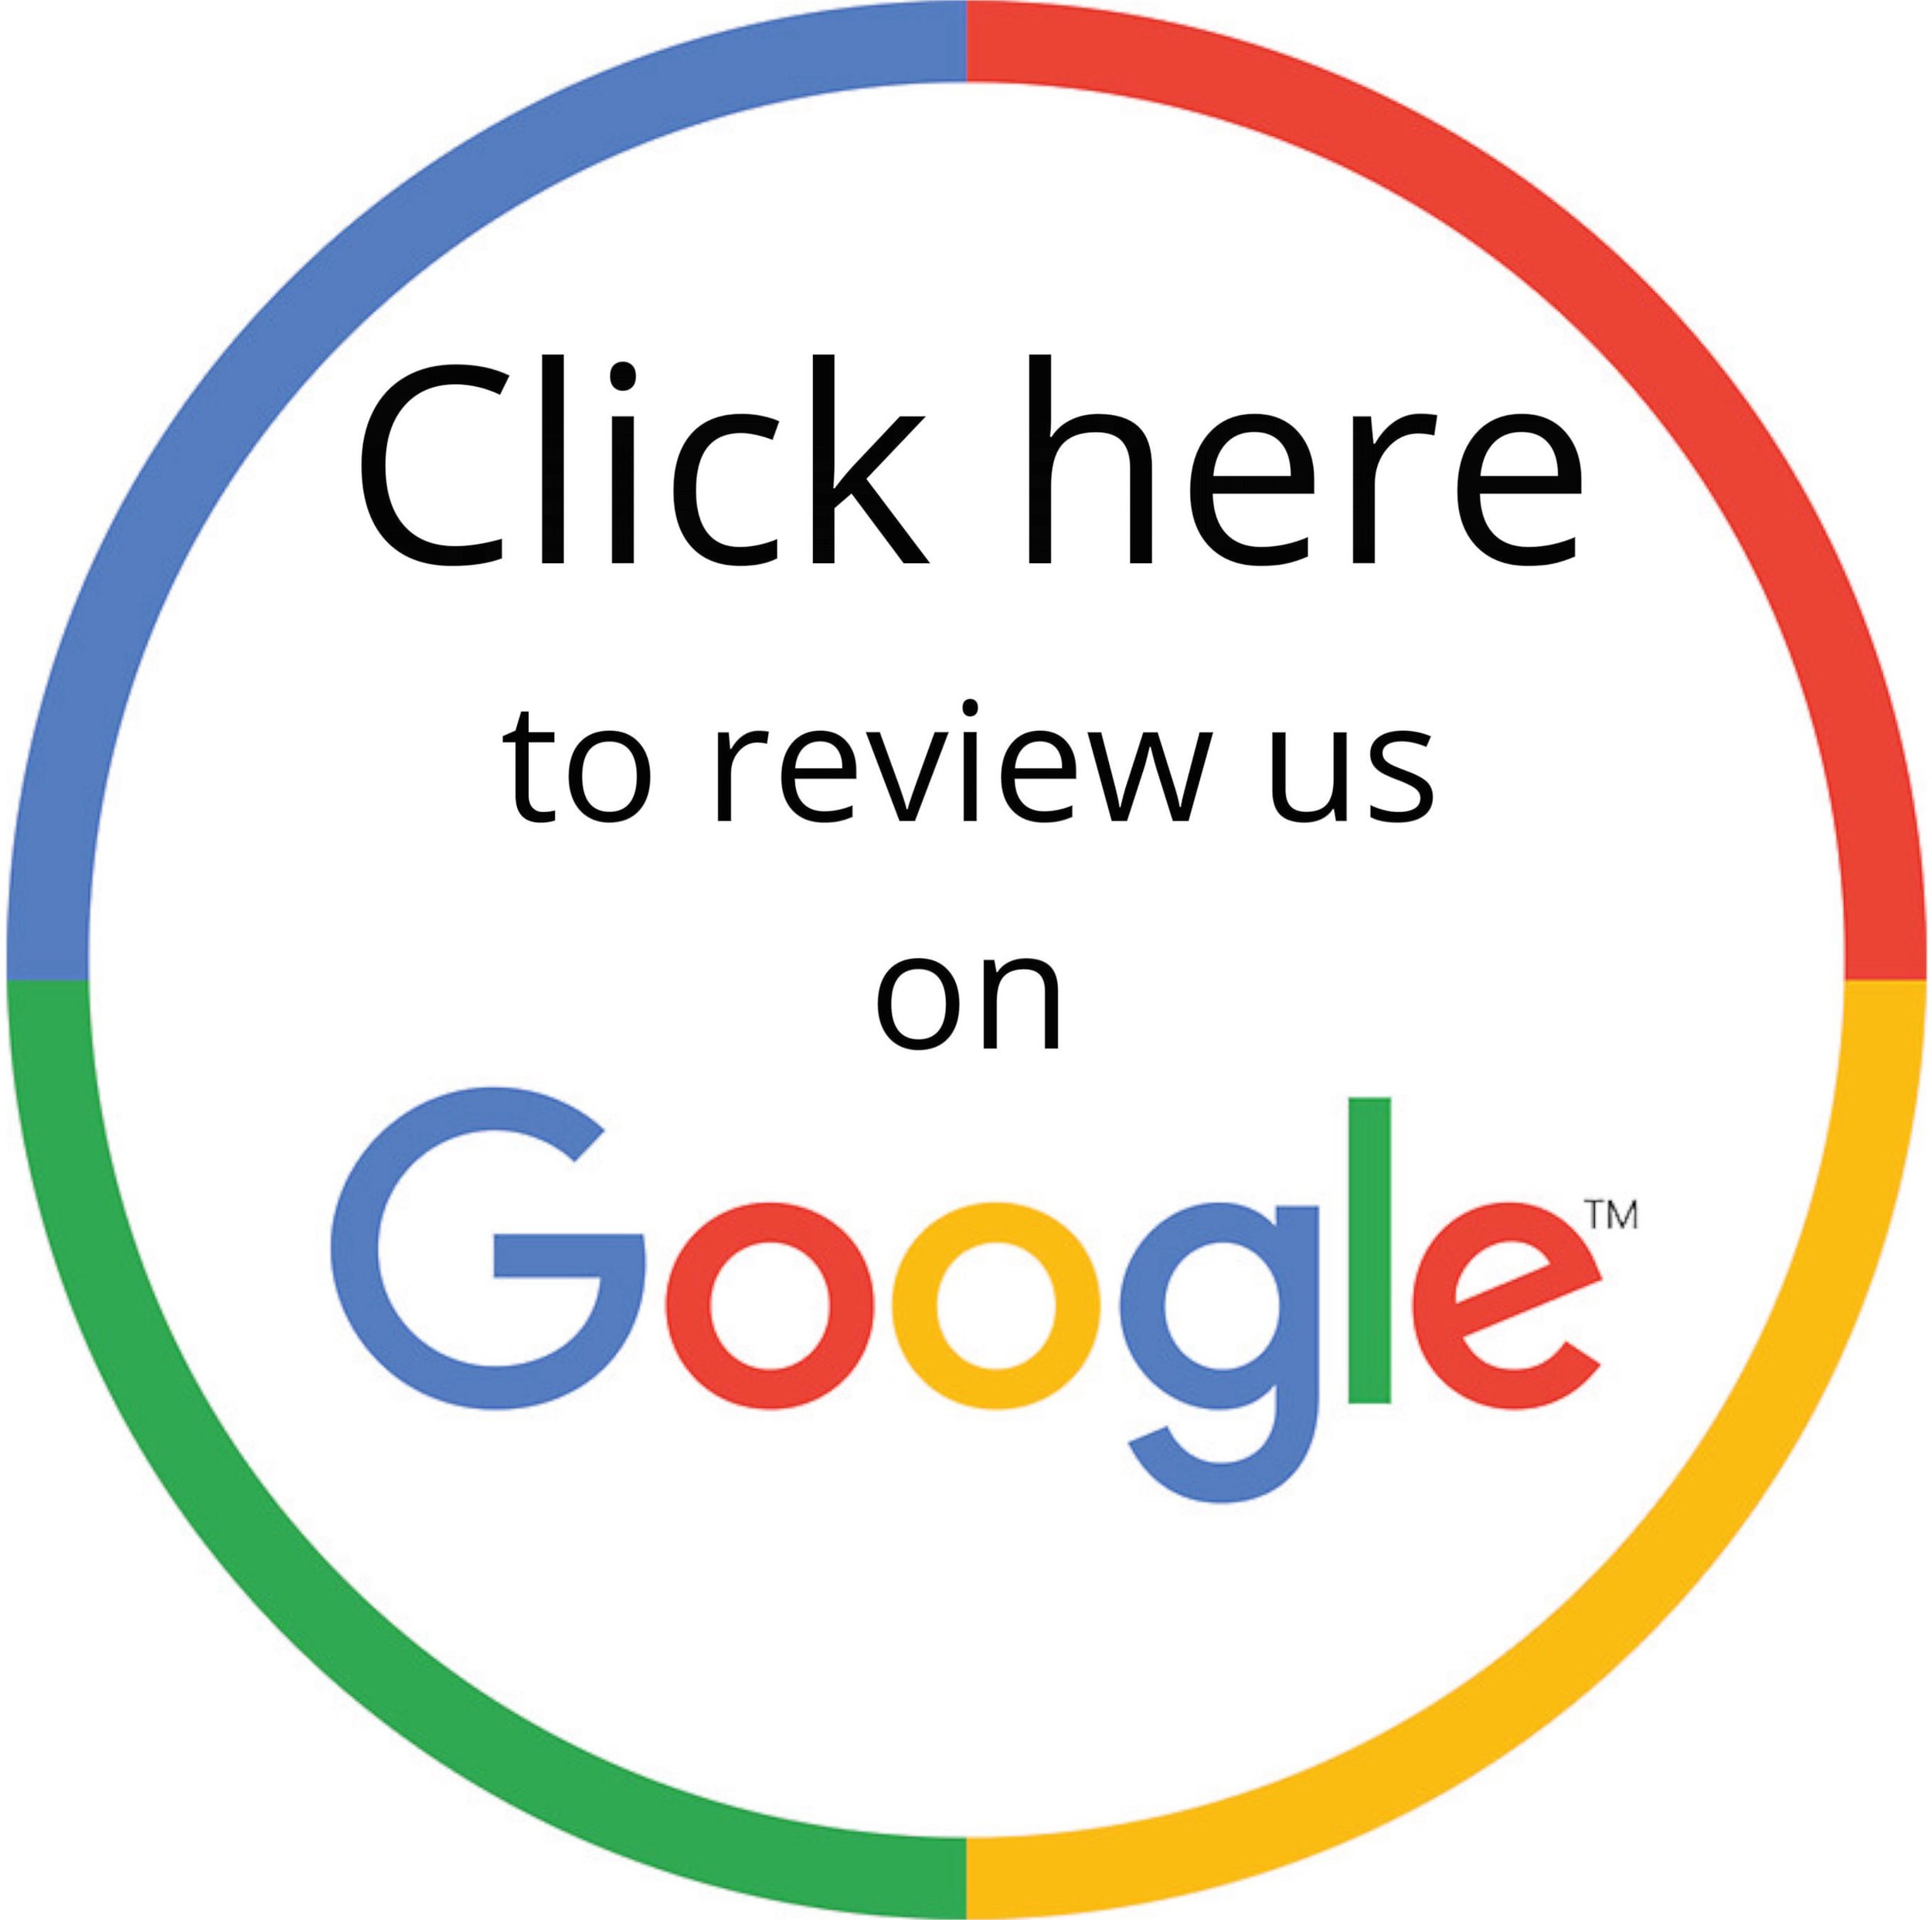 Click-here-to-review-us-on-Google-copy.jpg